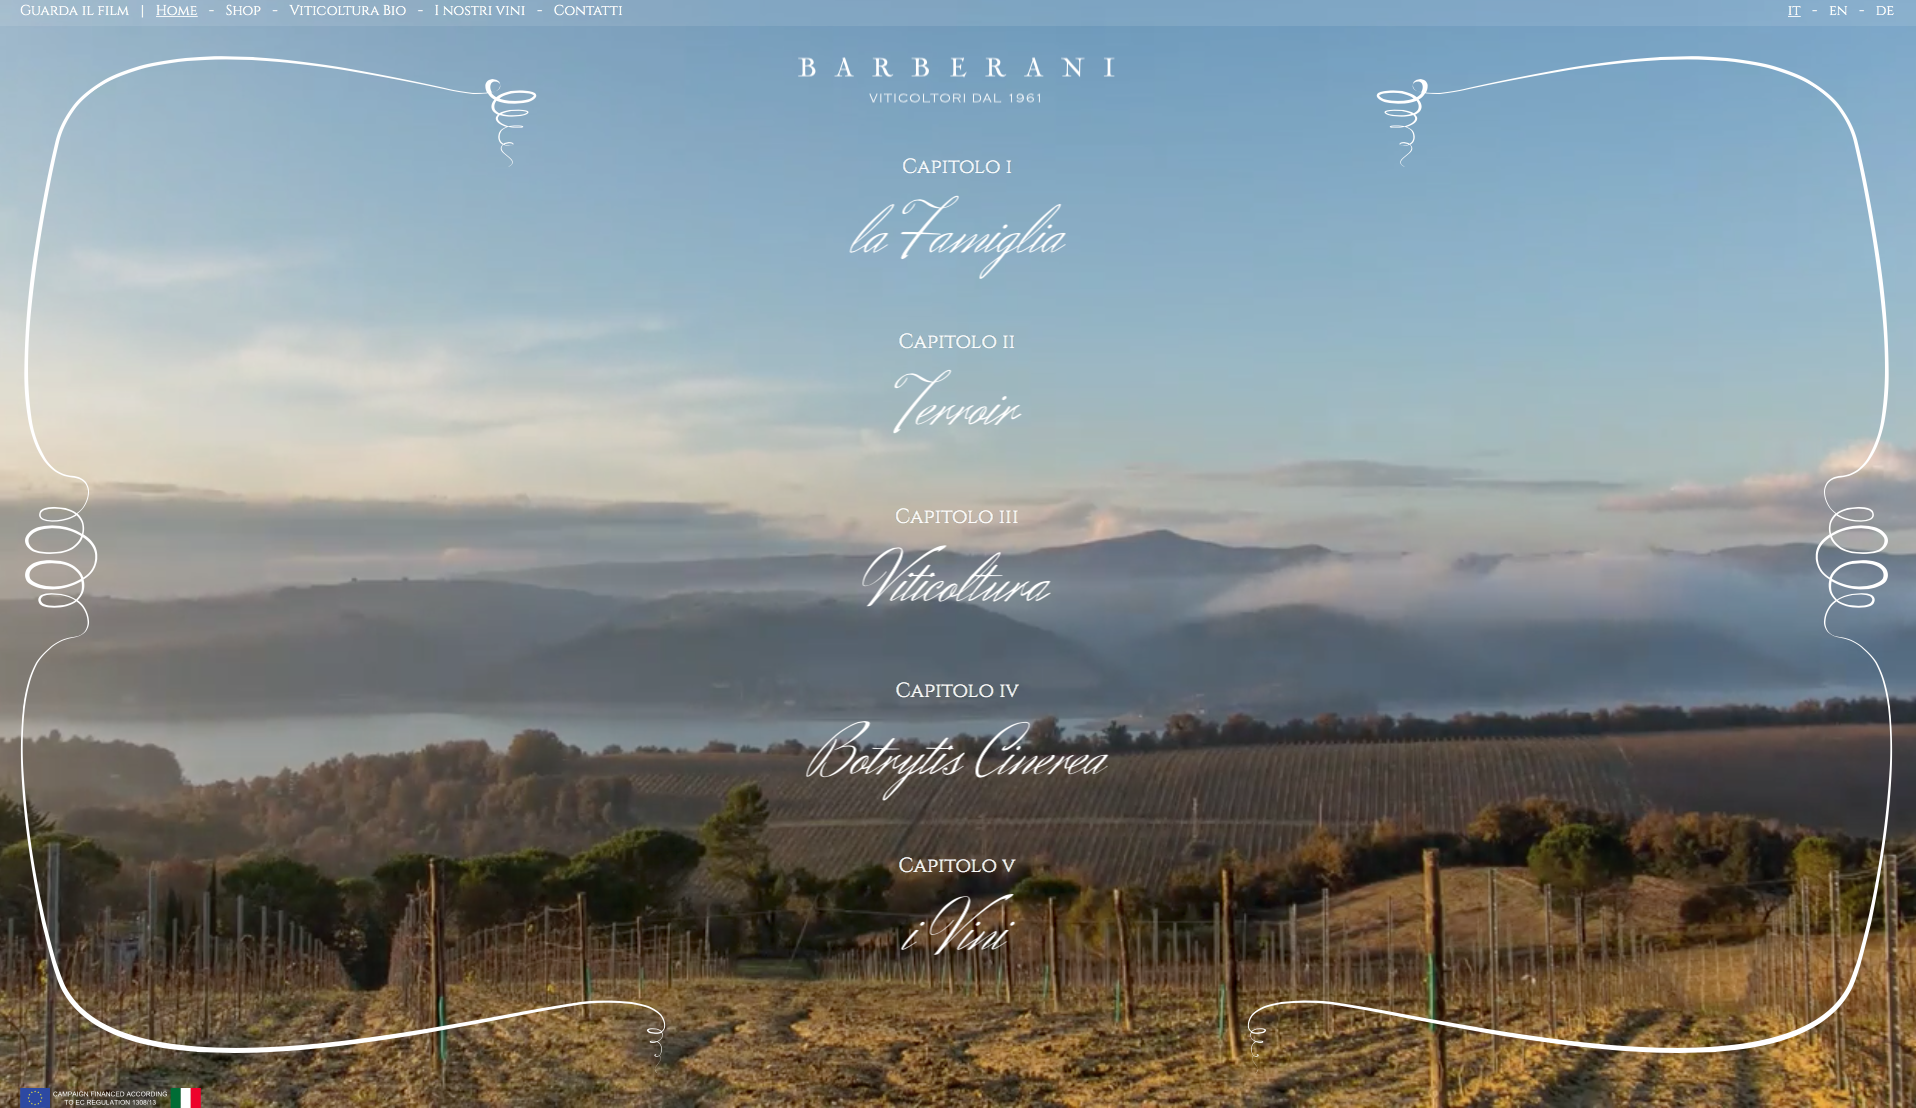 barberani website